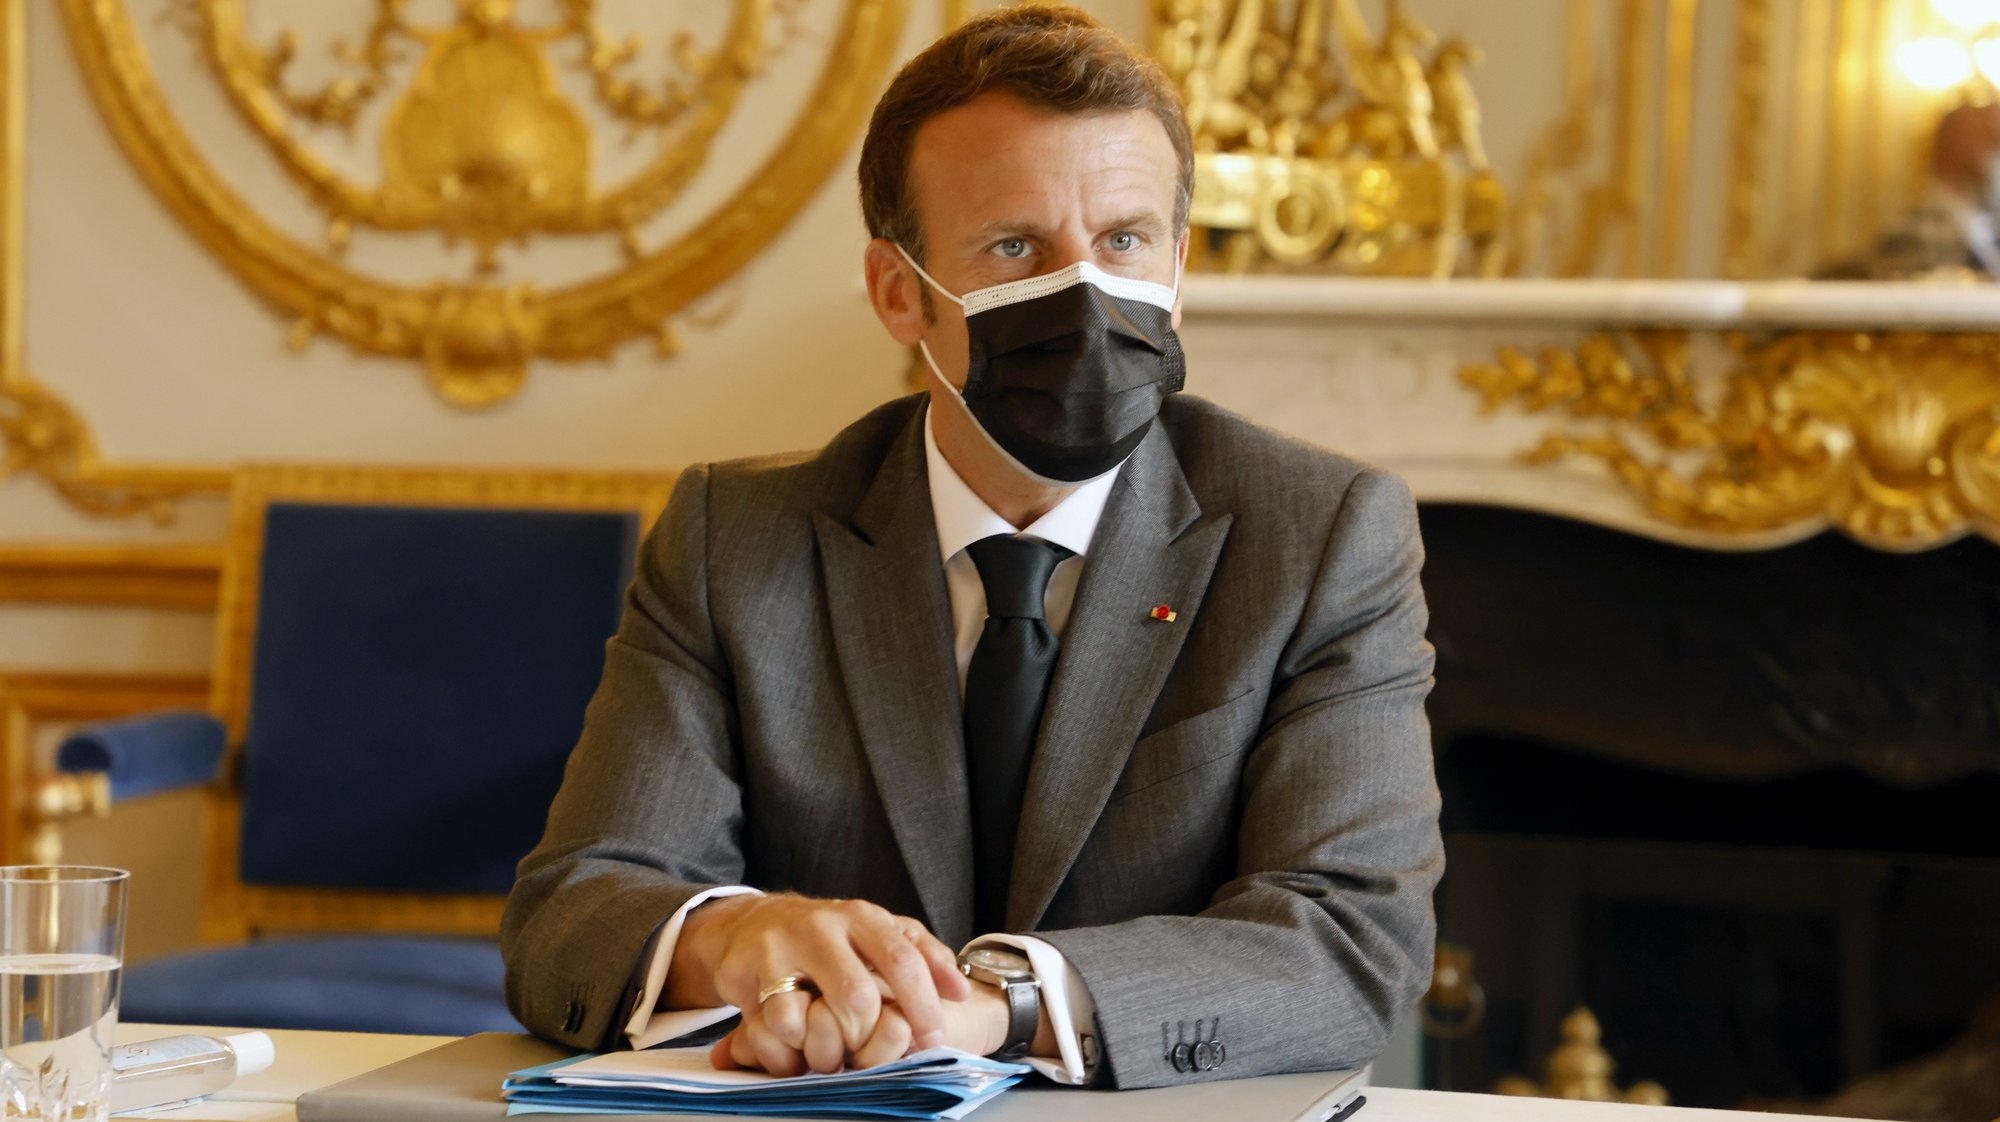 epa09290079 French President Emmanuel Macron attends a meeting with nightclubs owners, at the Elysee Palace, in Paris, France, 21 June 2021.  EPA/LUDOVIC MARIN / POOL  MAXPPP OUT